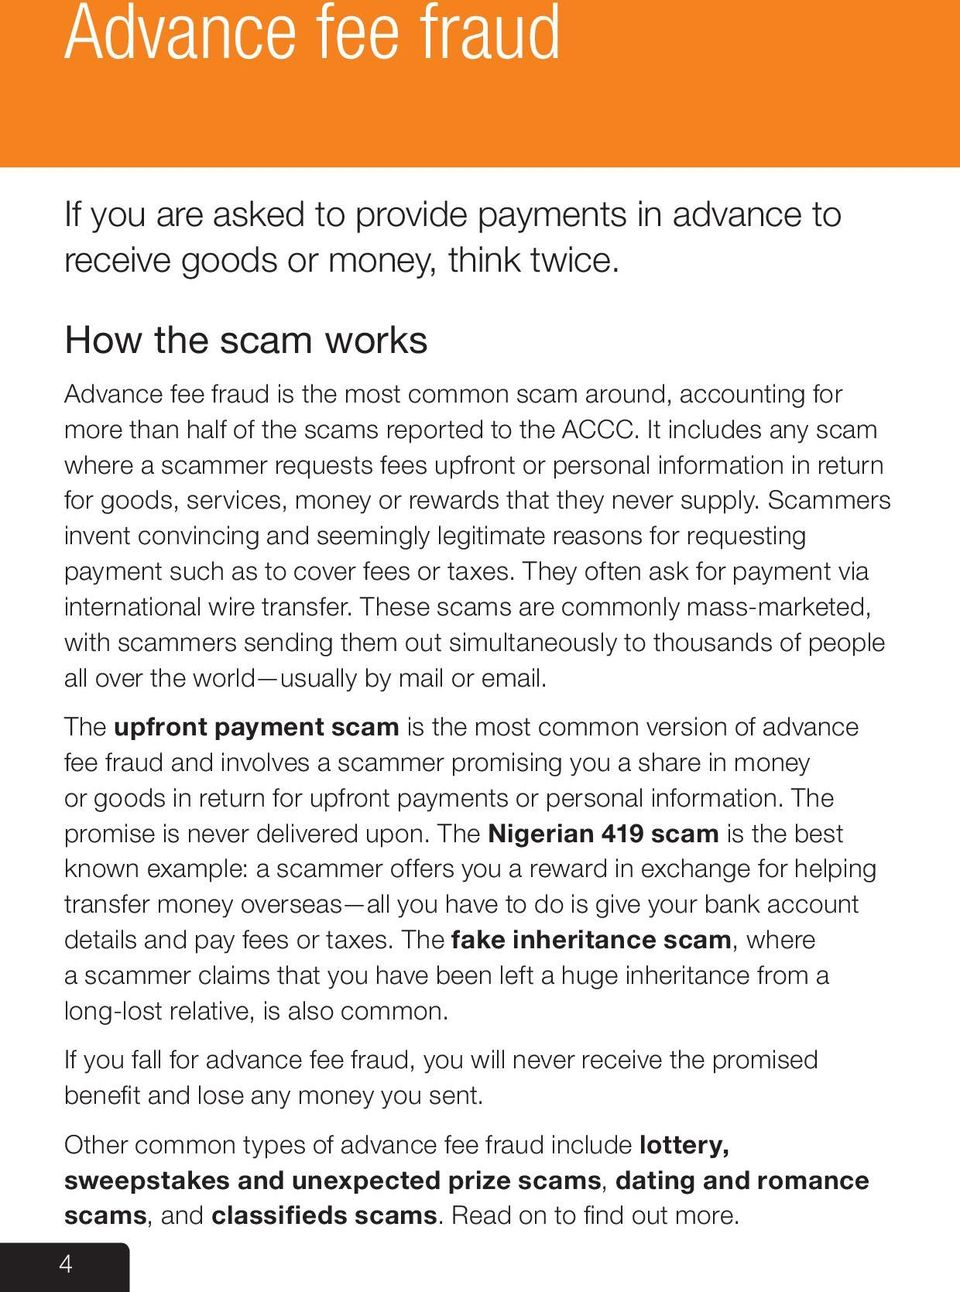 It includes any scam where a scammer requests fees upfront or personal information in return for goods, services, money or rewards that they never supply.